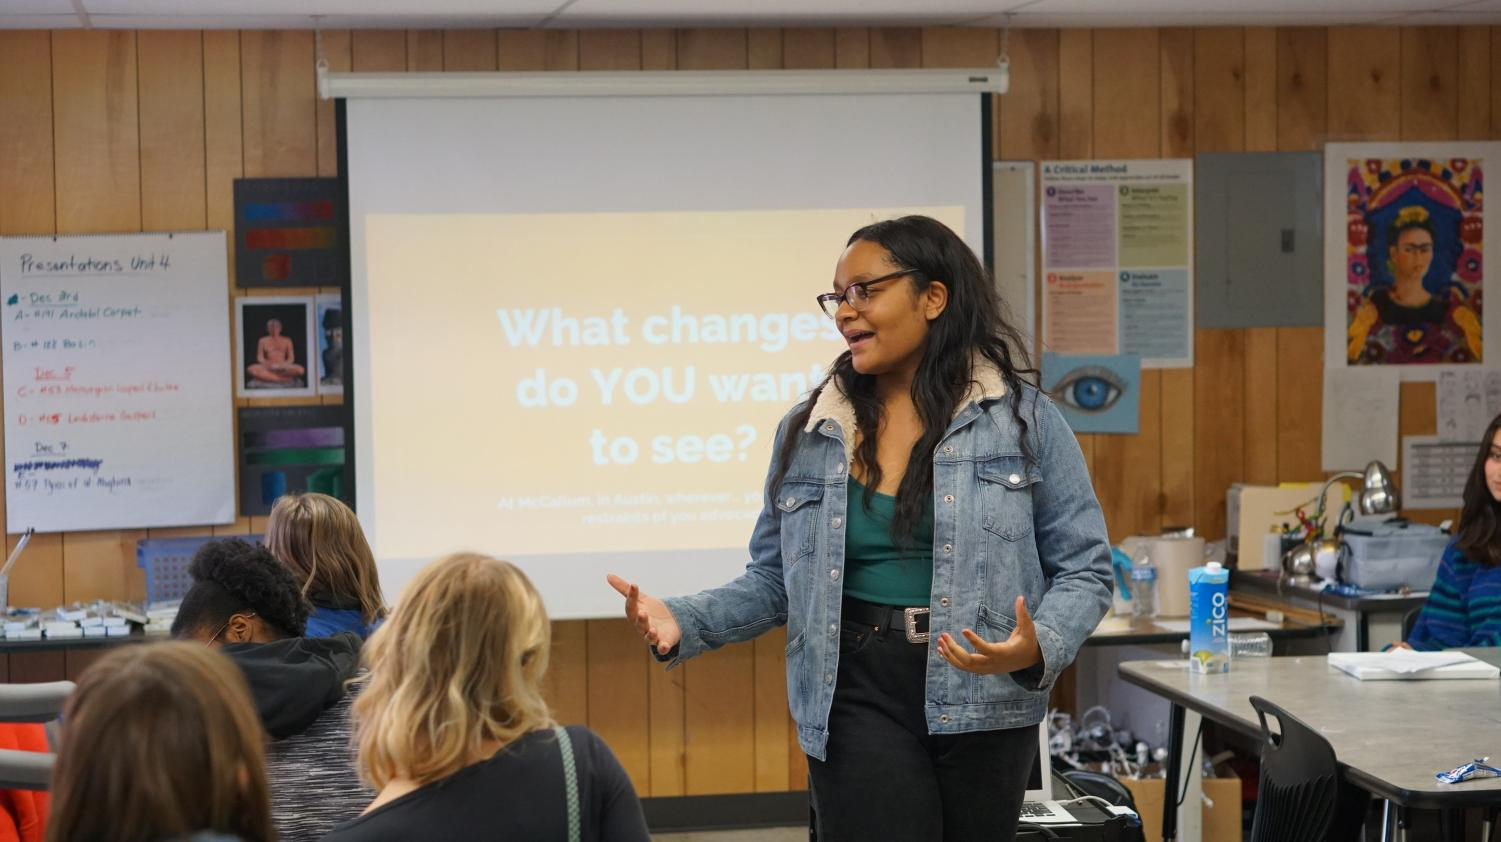 Junior Jordan Bibby presents at the first meeting of The Students of Color Alliance on Nov. 28 in Ms. O'Keefe's room.